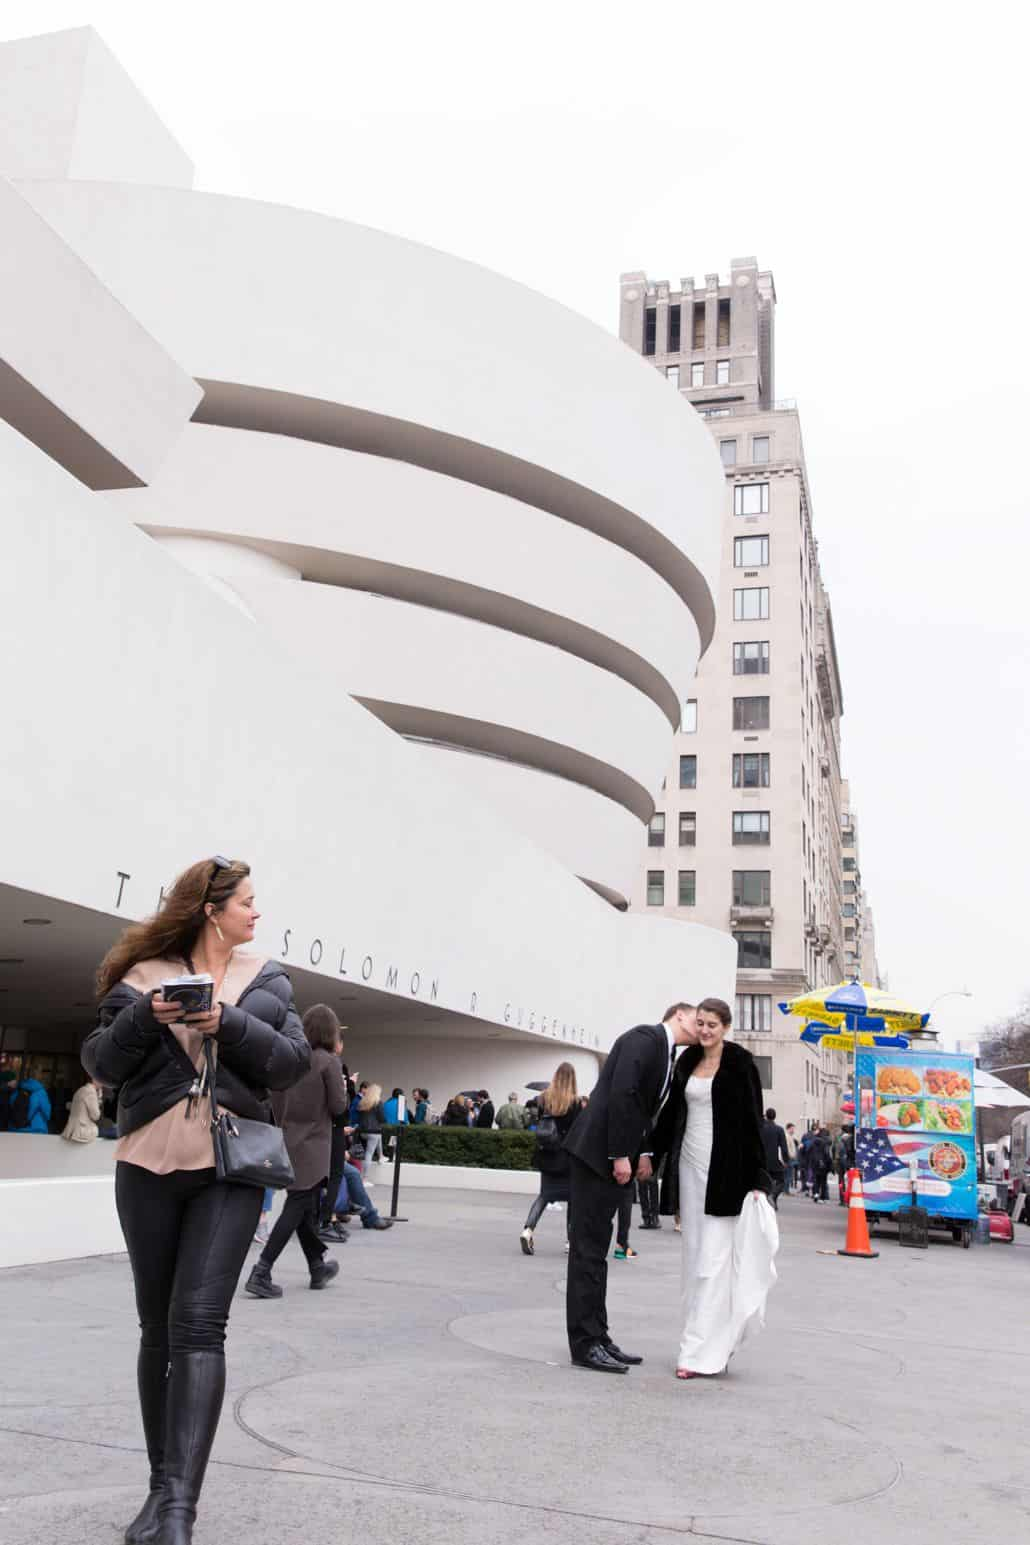 Groom kisses brides cheek in front of Guggenheim in New York as passer-by glances at them over her shoulder. Bride wears black coat over Veka Bridal wedding dress. City skyline and food truck in background. New York Wedding Photographer. Guggenheim NYC wedding